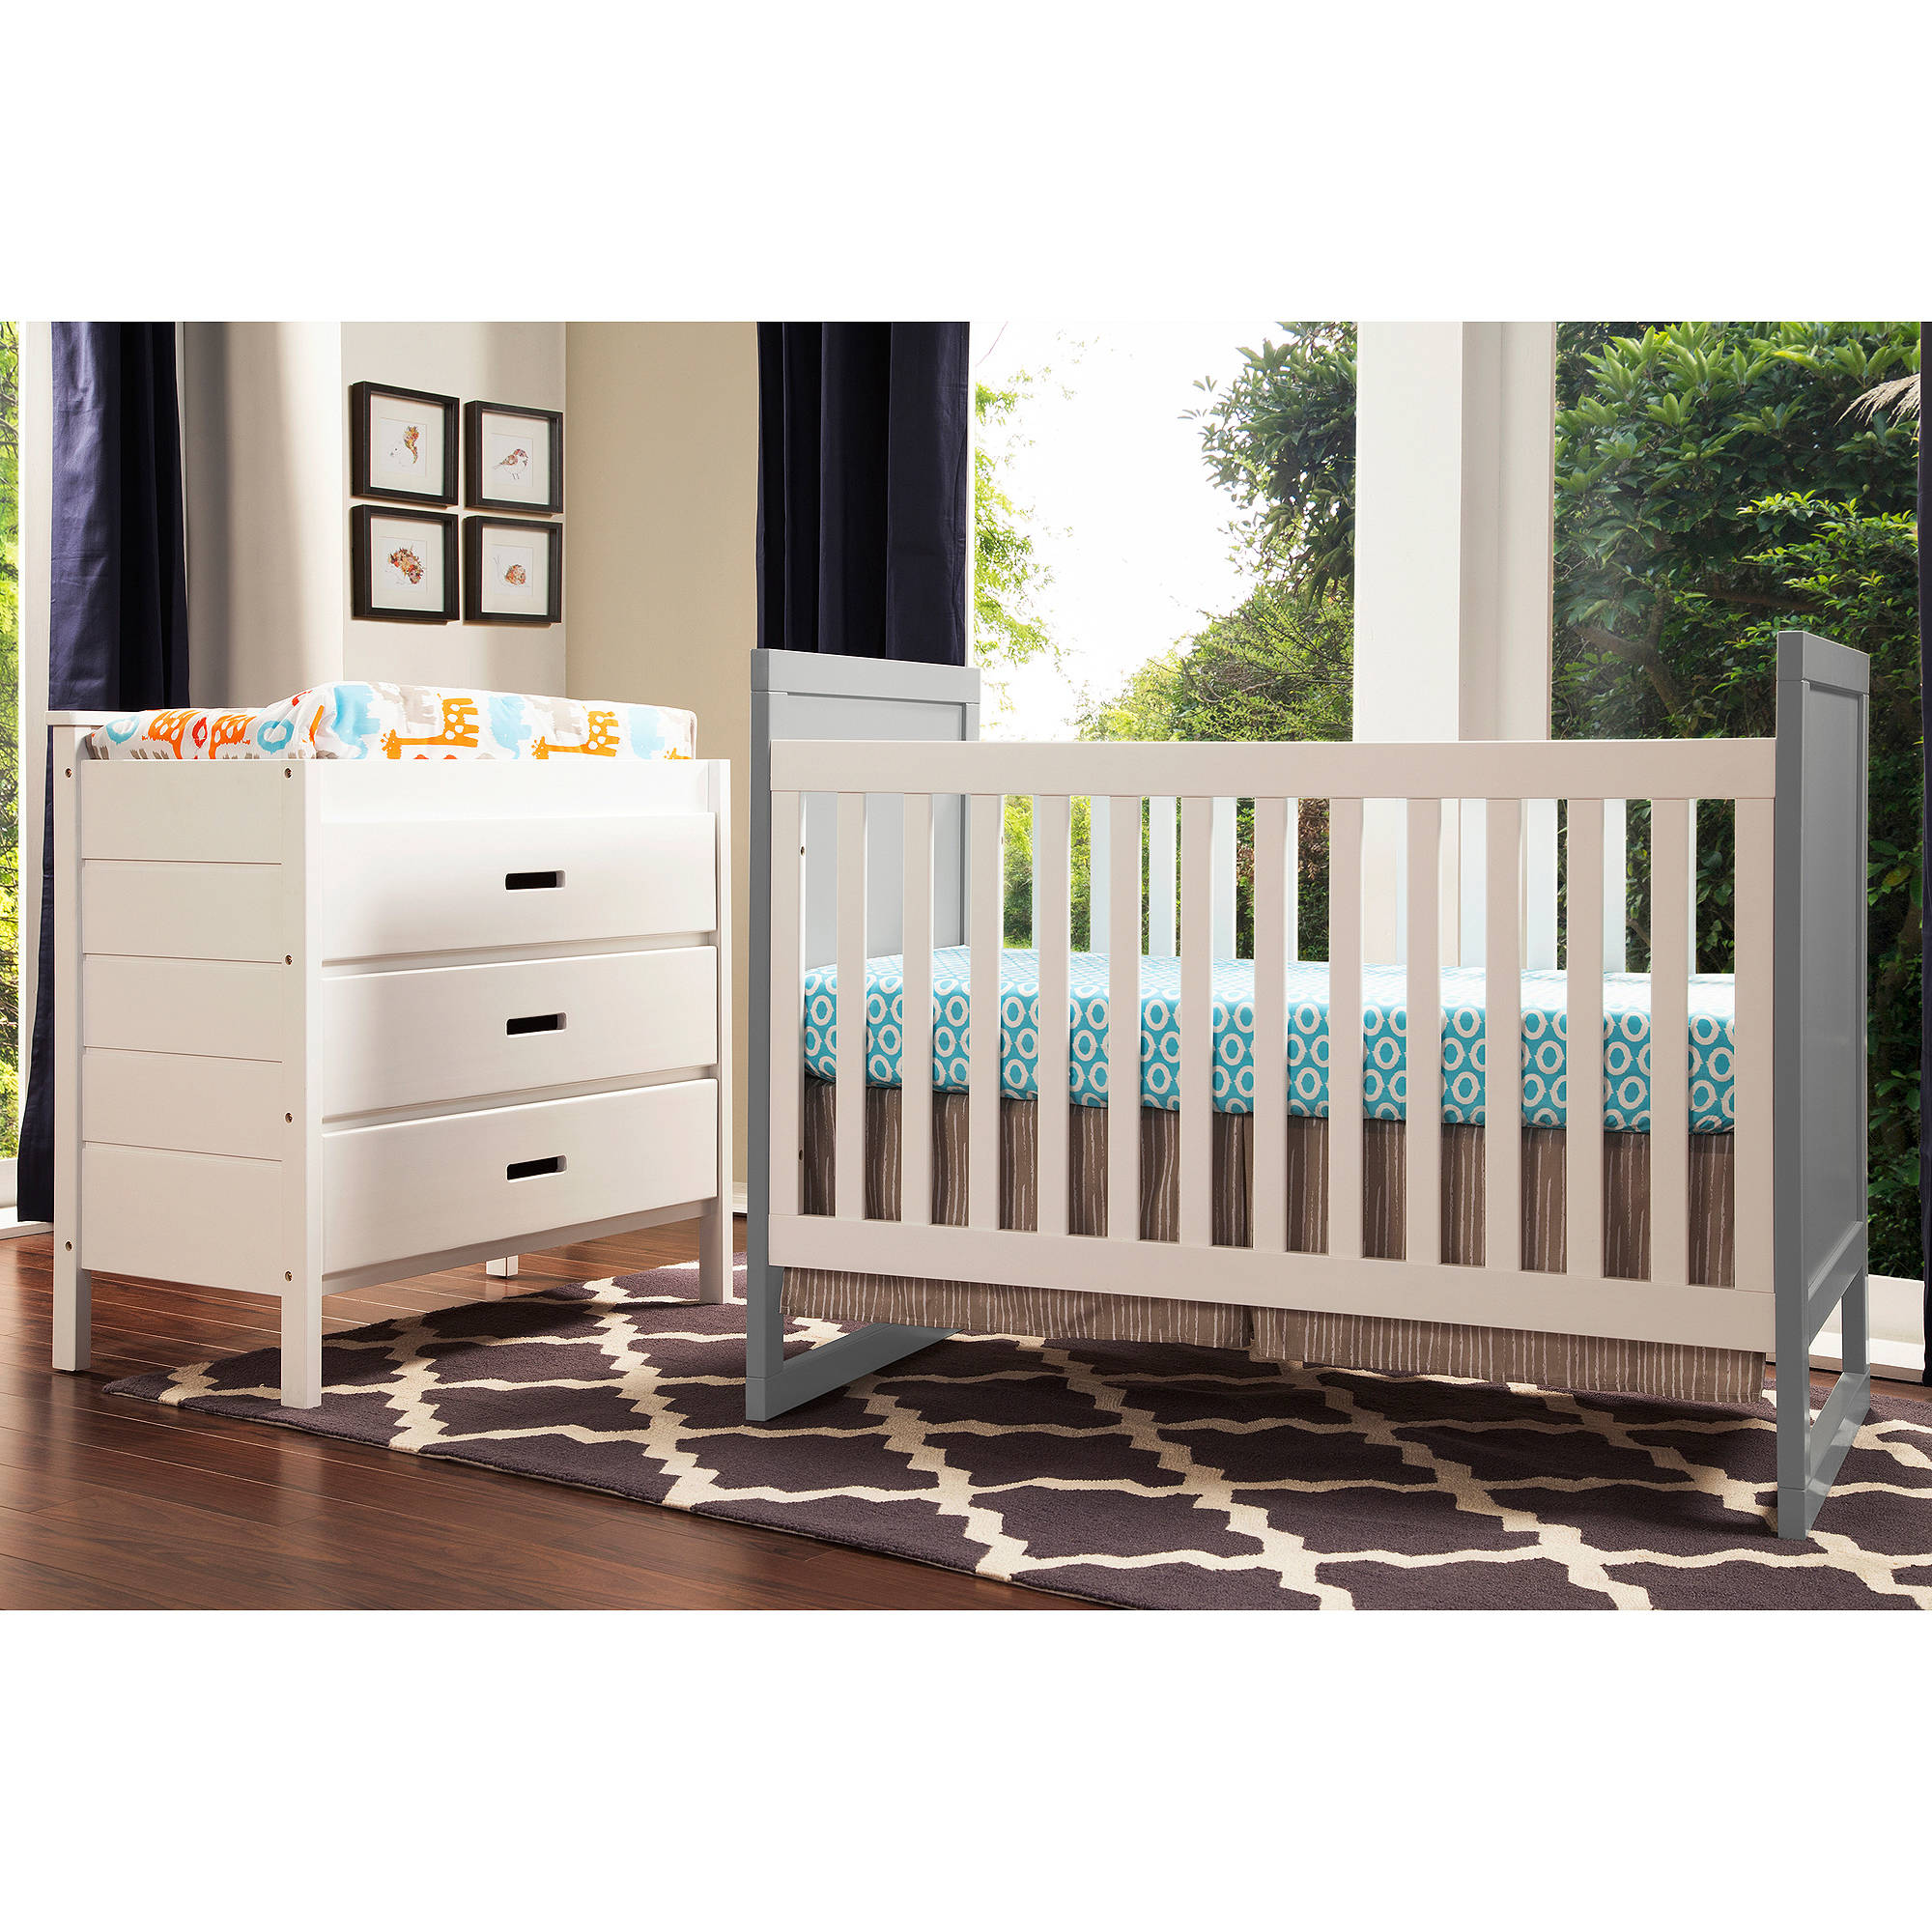 Baby Mod Modena Mod 2-Tone 3-in-1 Fixed-Side Convertible Crib